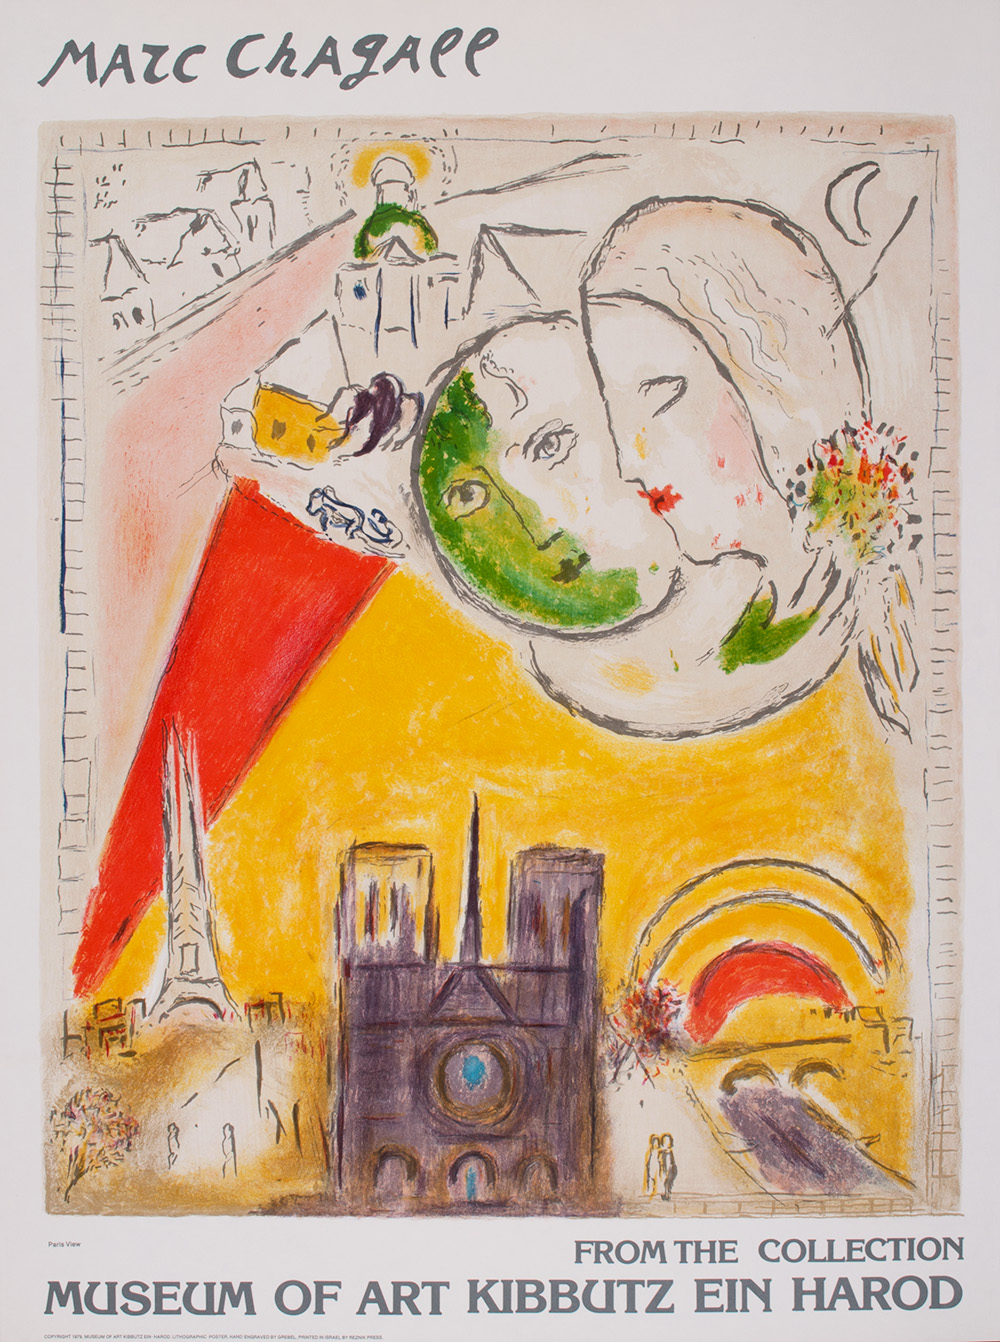 Title: PARIS VIEW Year: 1979 Medium: Lithograph Image size: 23 X 27in.